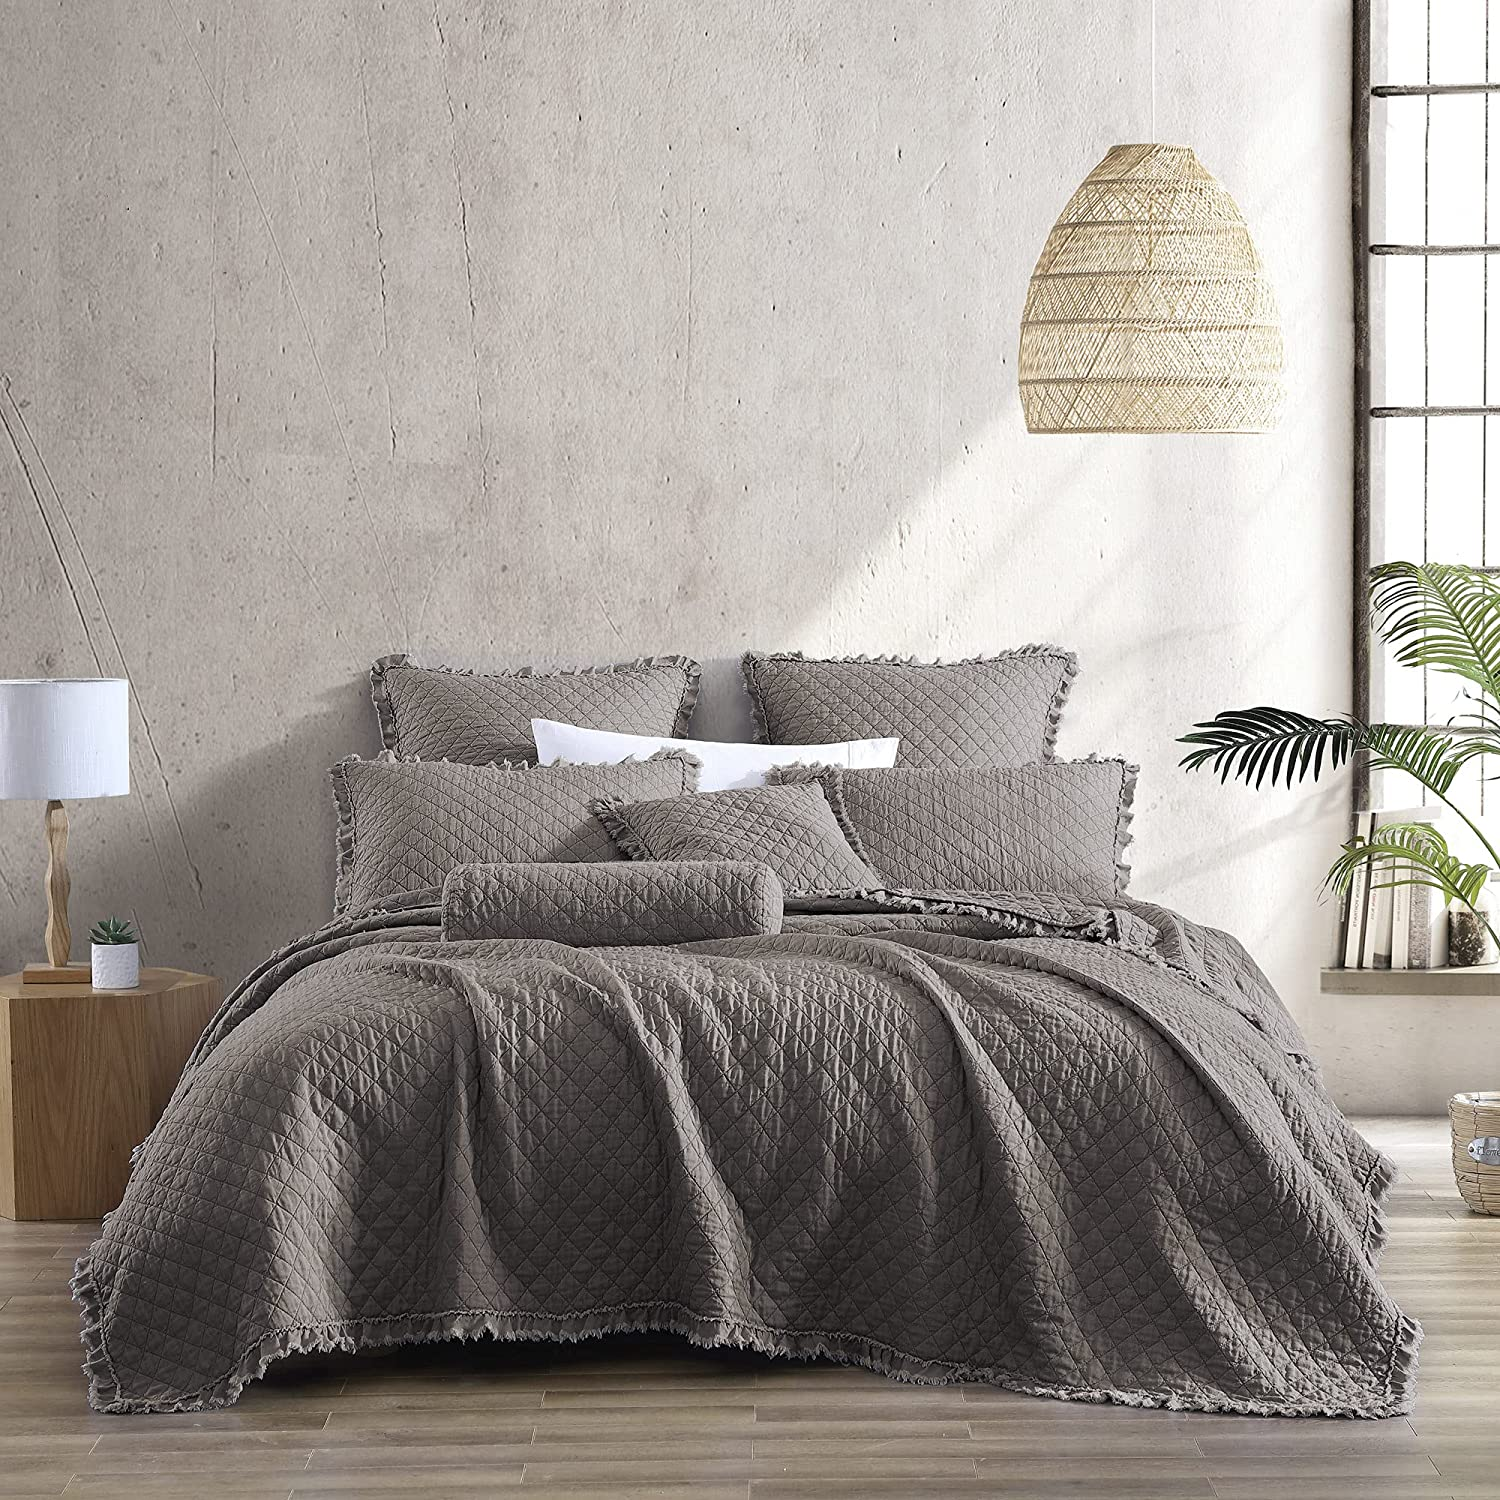 Brielle Home Ravi Stone Washed Set Diamond Solid Quilt Special price for a limited Washington Mall time Stitched